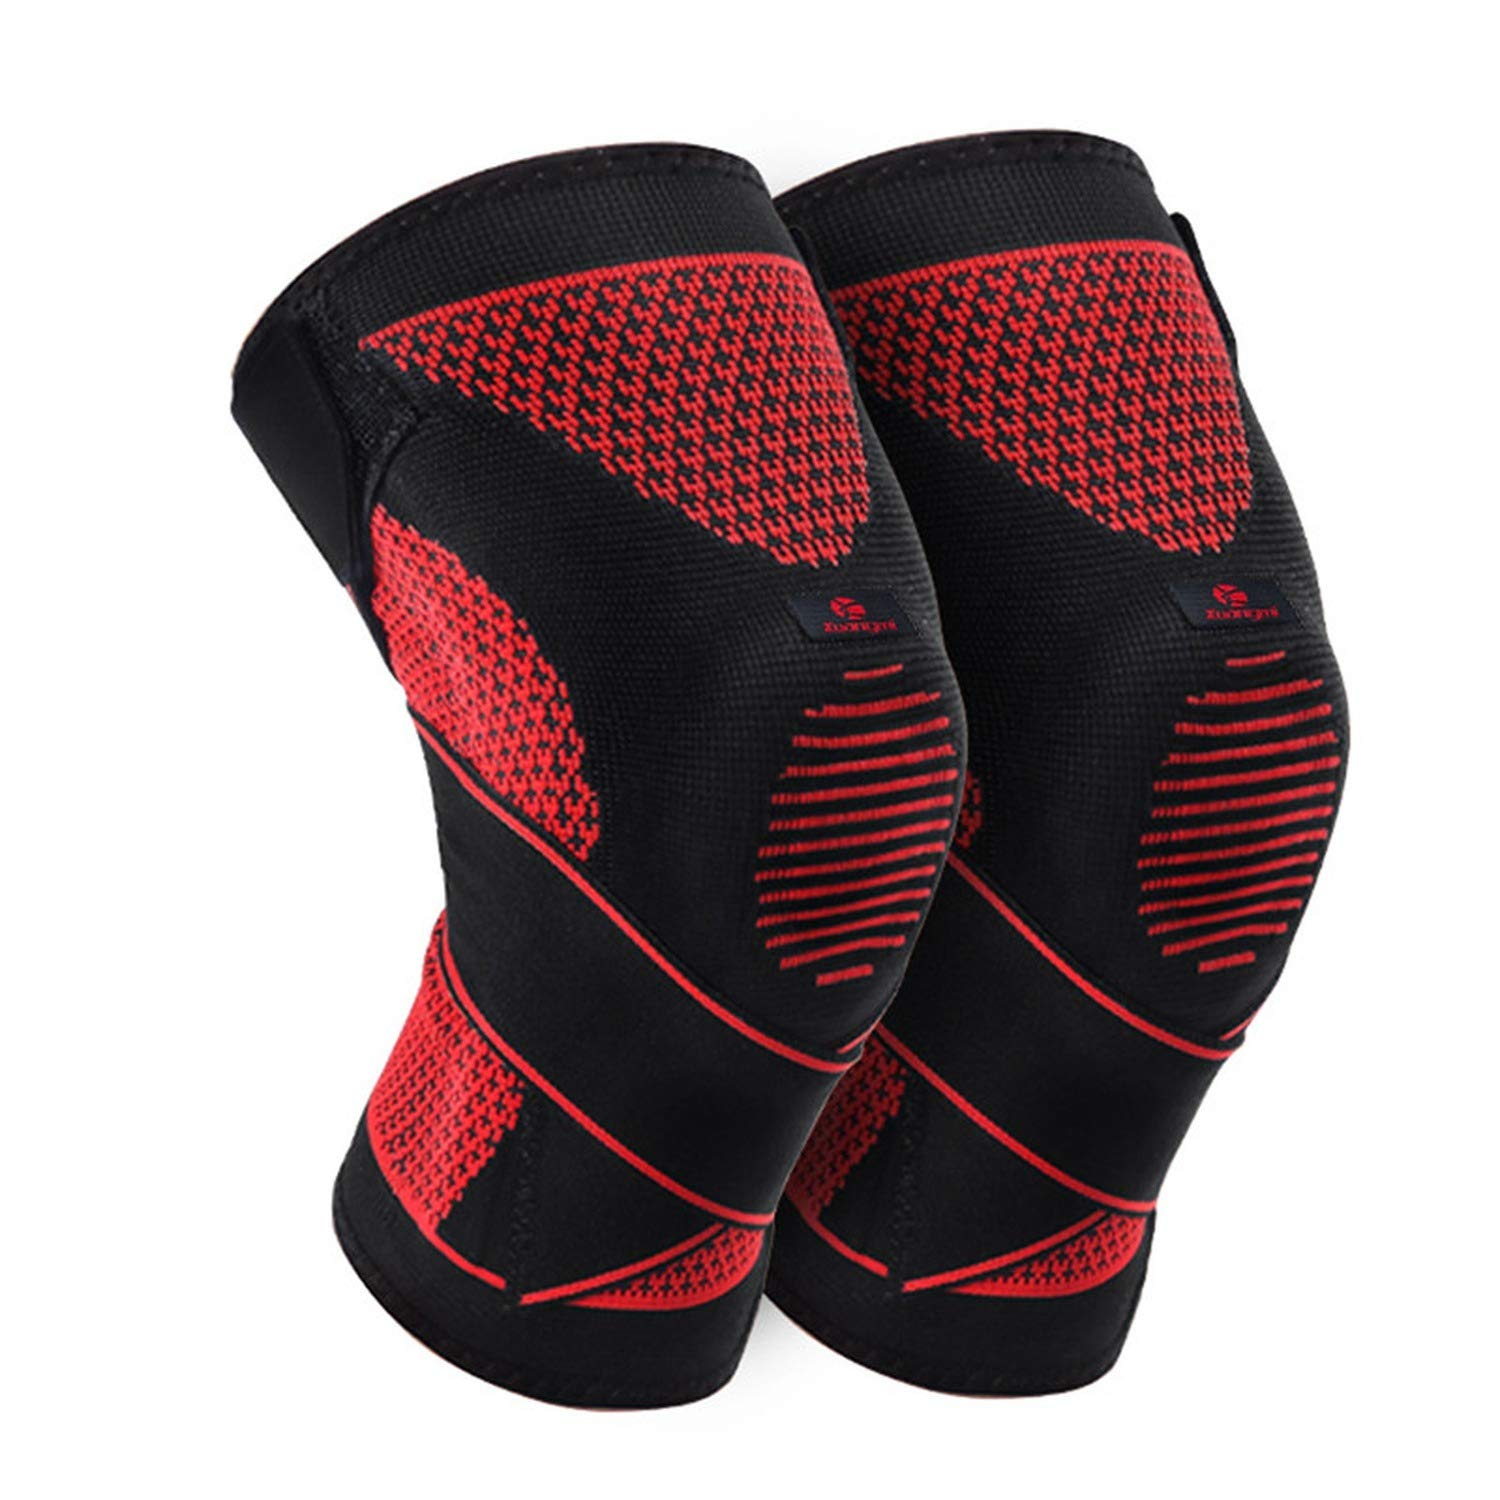 1 Pc Women Men Compression Knee Sleeve Support Relief Sports Silicones Basketball Protector,S